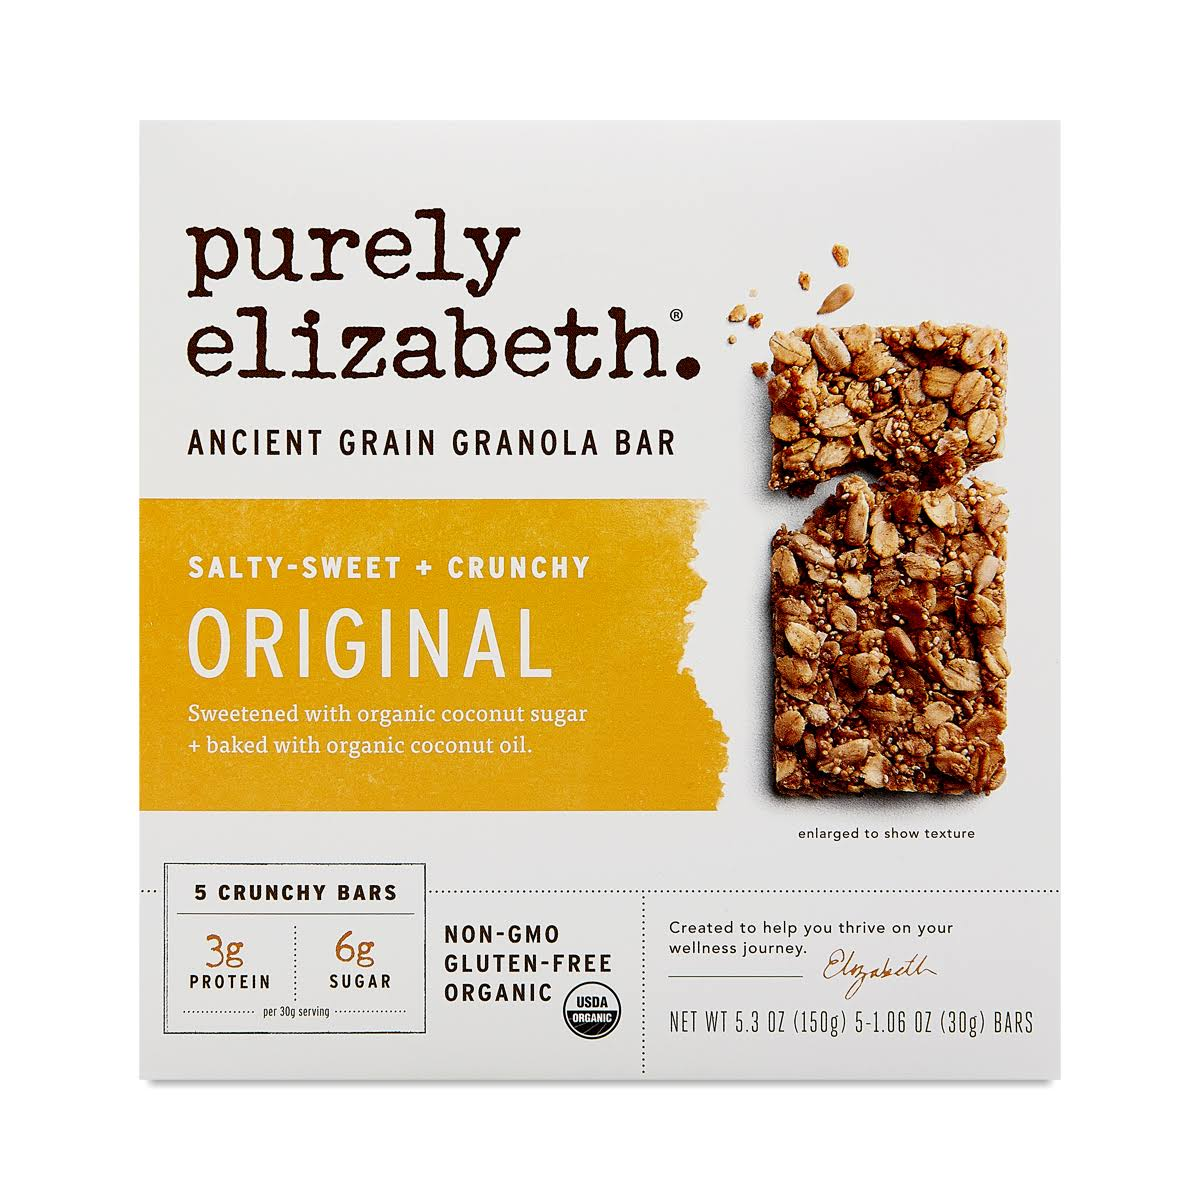 Purely Elizabeth Granola Bar, Ancient Grain, Original - 5 pack, 1.06 oz bars